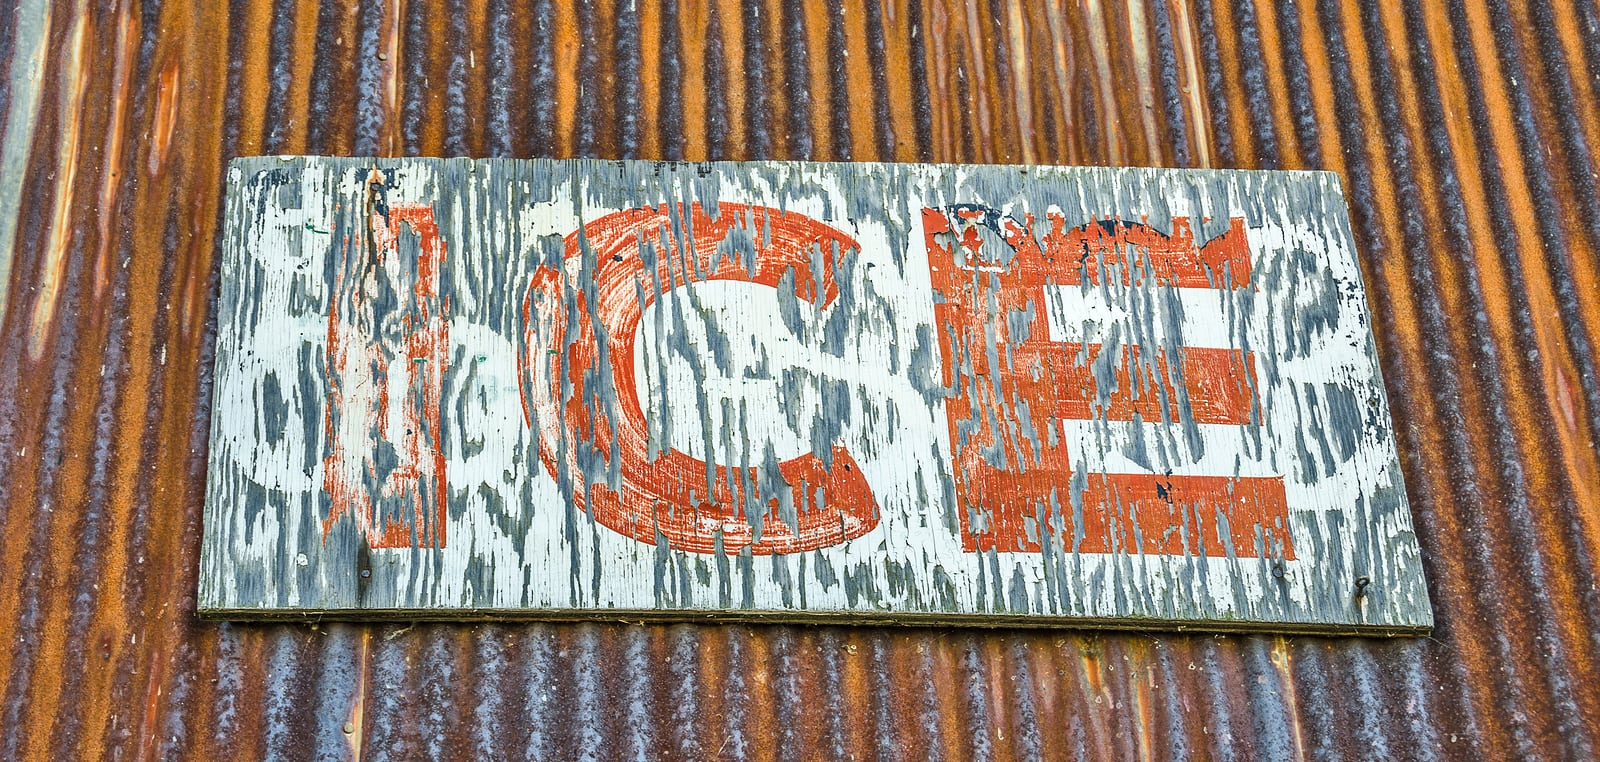 Rust on the corrugated metal and weathering of the wood sign for ice